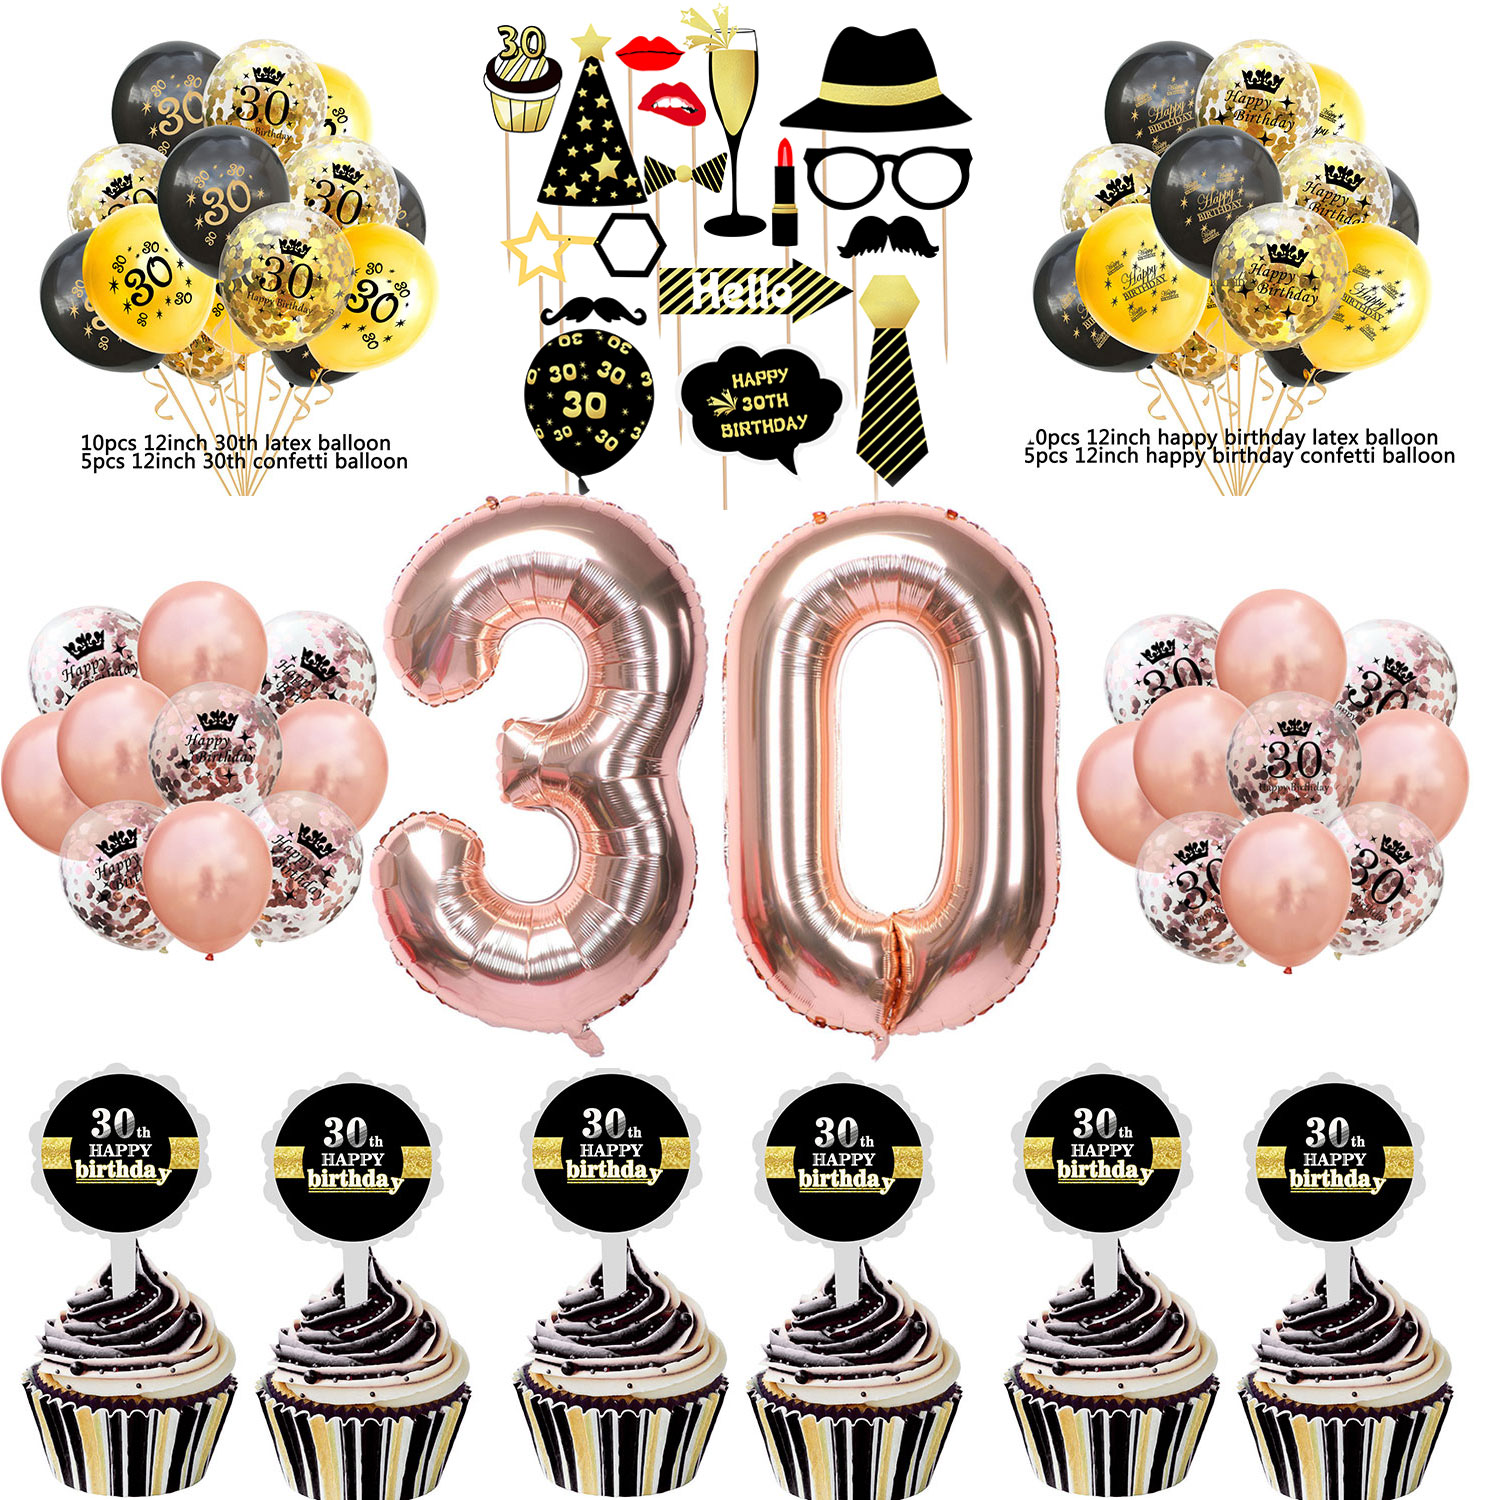 ZLJQ 30th Birthday Party Decoration Supplies For Him Her Banner Balloons Golden Jumbo Number 30 Crown Confetti Balloon In Ballons Accessories